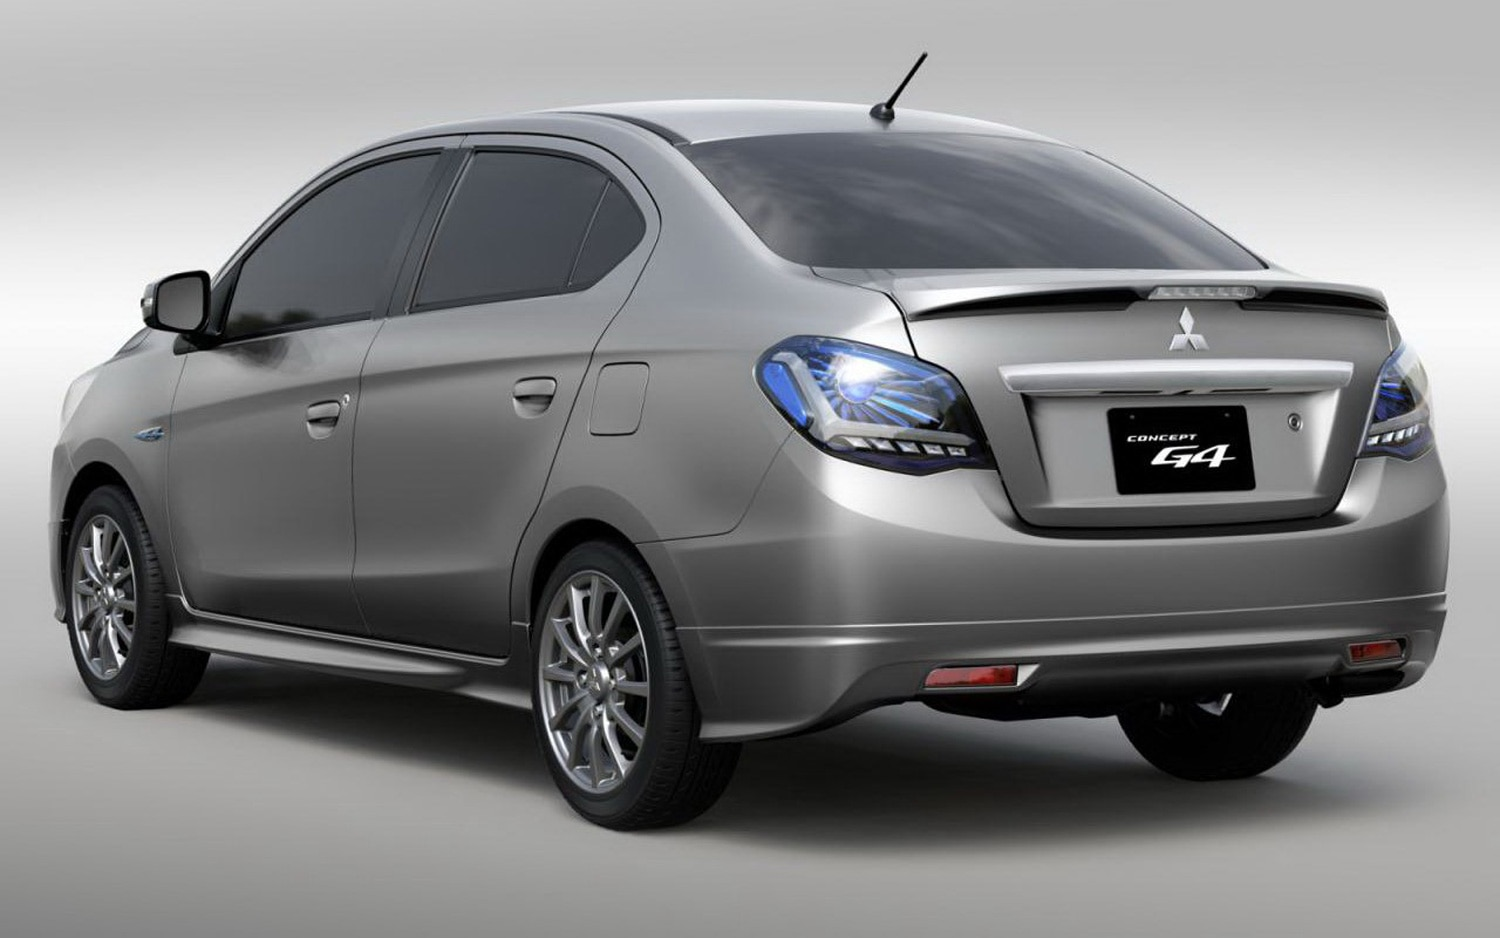 Mitsubishi Mirage G4 Sedan Likely Coming To U.S. Market